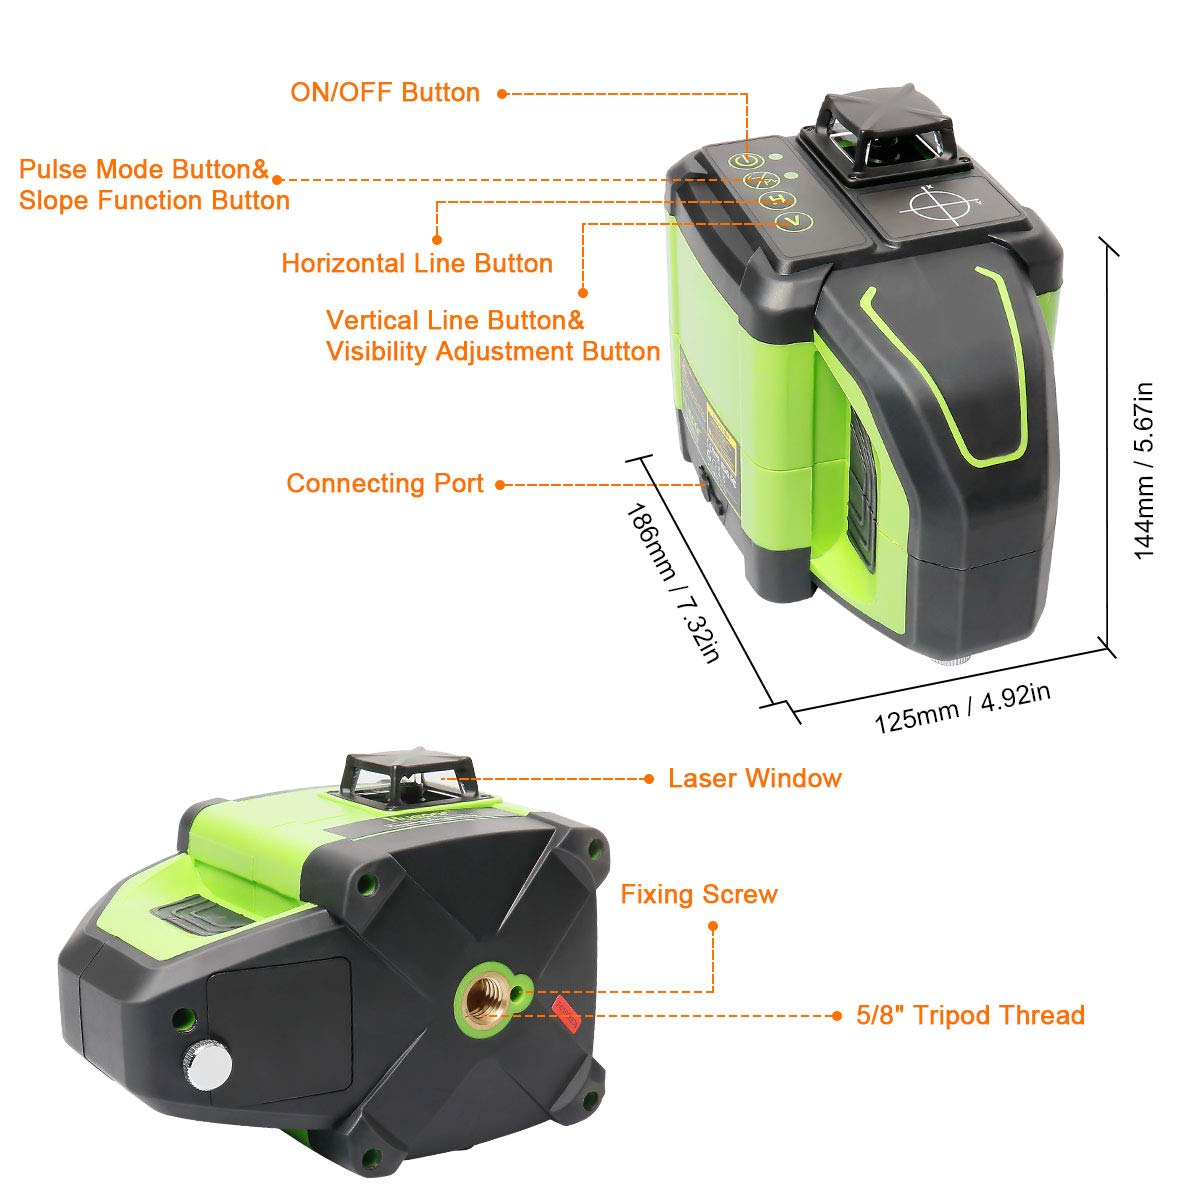 Adaptable Metal Base Included DT03G Dual Slope Function Huepar Electronic Self-Leveling 3D Green Beam Laser Level with Receiver 3x360 Cross Line Three-Plane Leveling and Alignment Line Laser Level